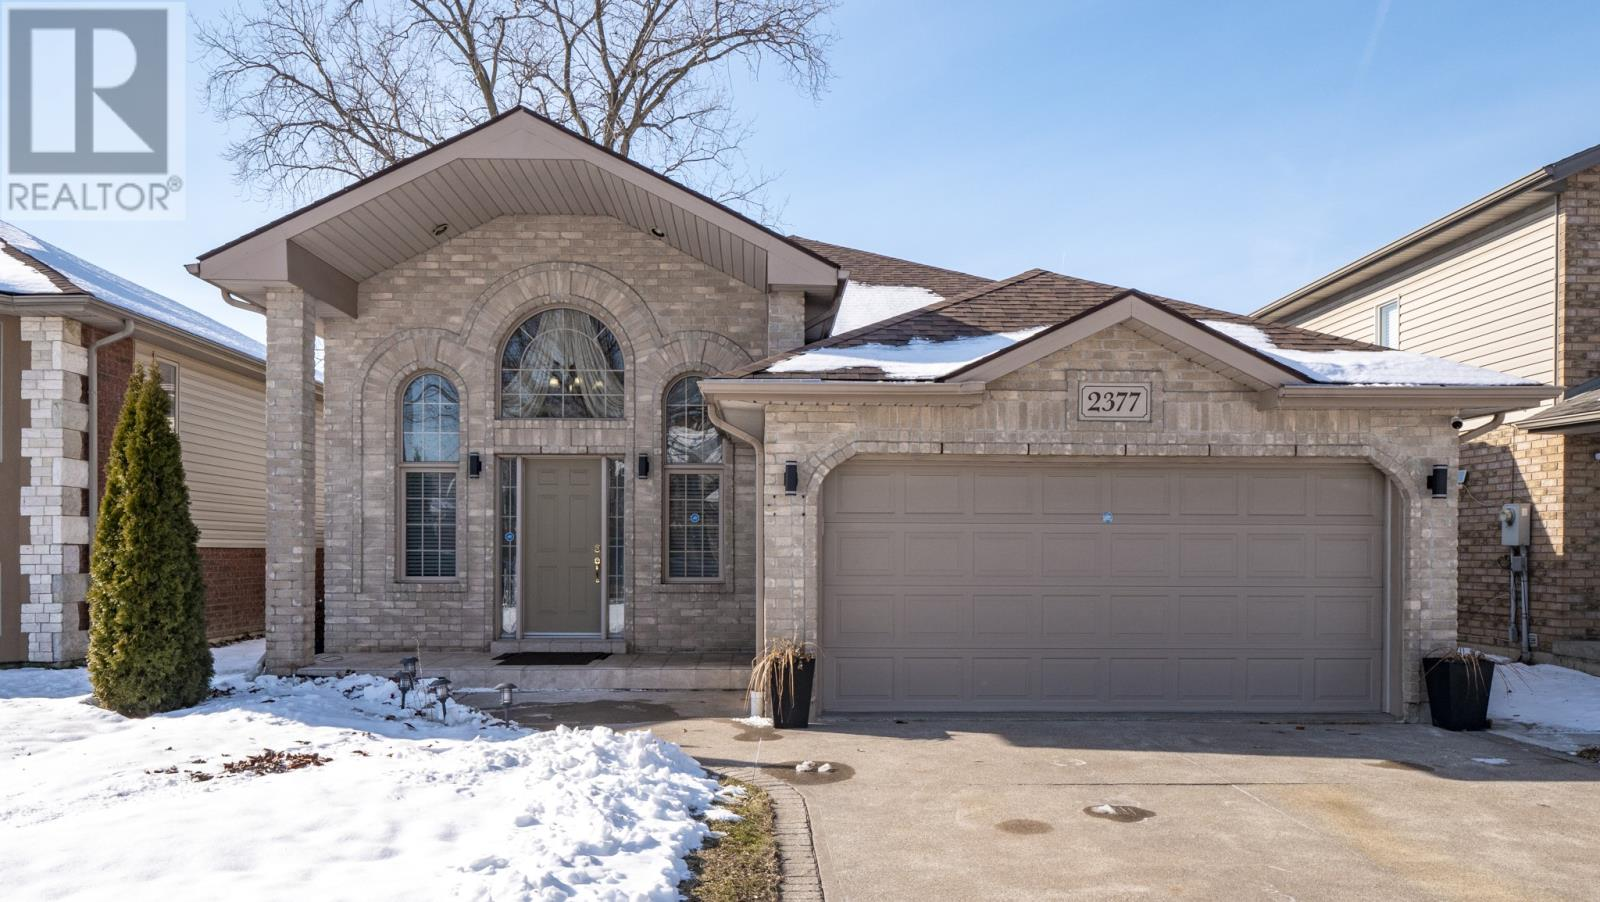 2377 St. Patrick's Ave, Windsor Home For Sale!